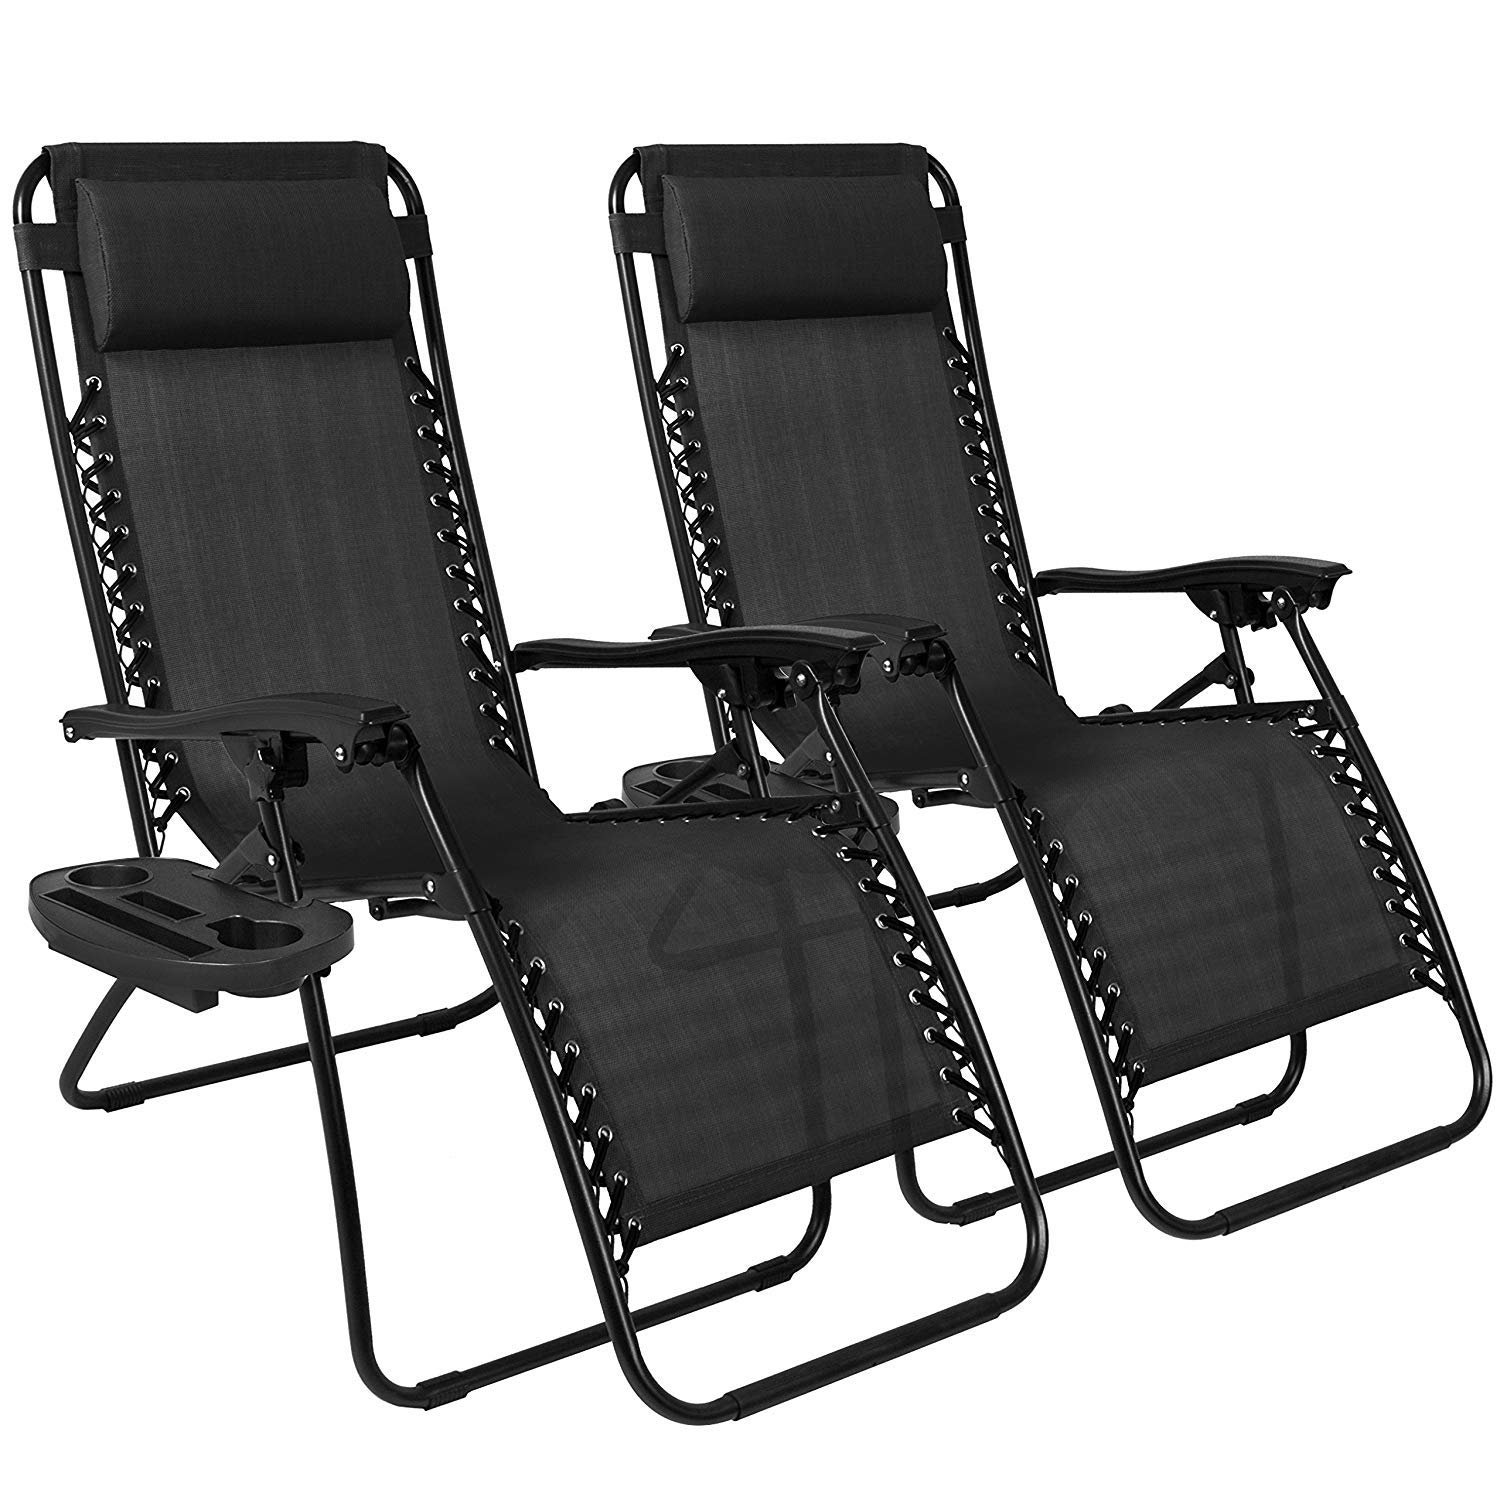 Pleasant Chillax New Set Of 2 Adjustable Zero Gravity Lounge Chair Recliners For Patio Pool With Cup Holders Black Gmtry Best Dining Table And Chair Ideas Images Gmtryco